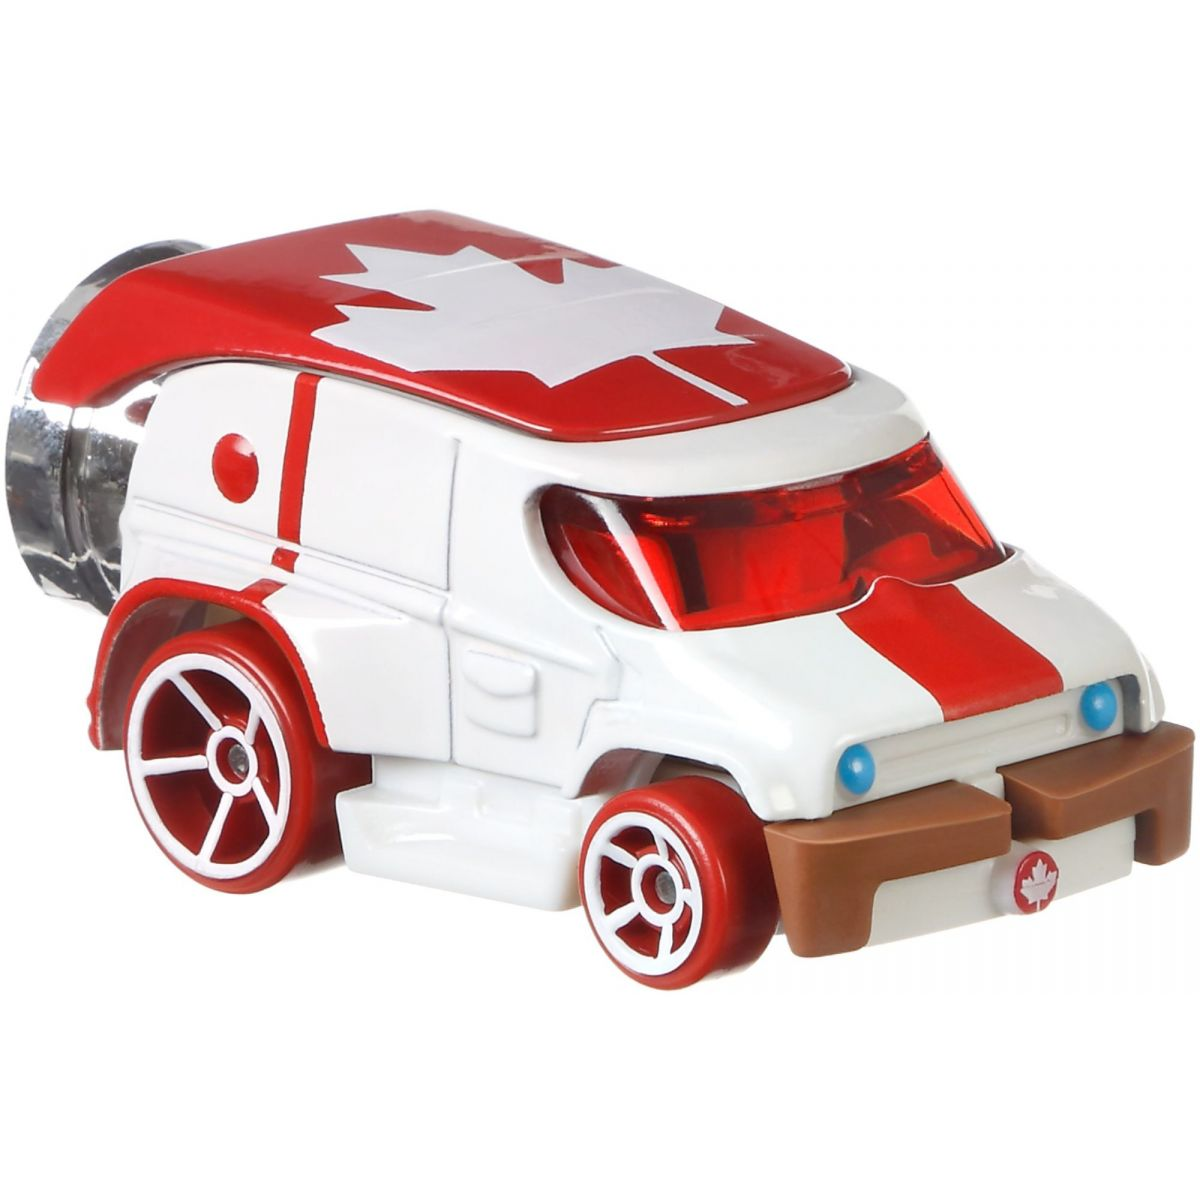 Hot Wheels tematické auto Toy story Duke Caboom